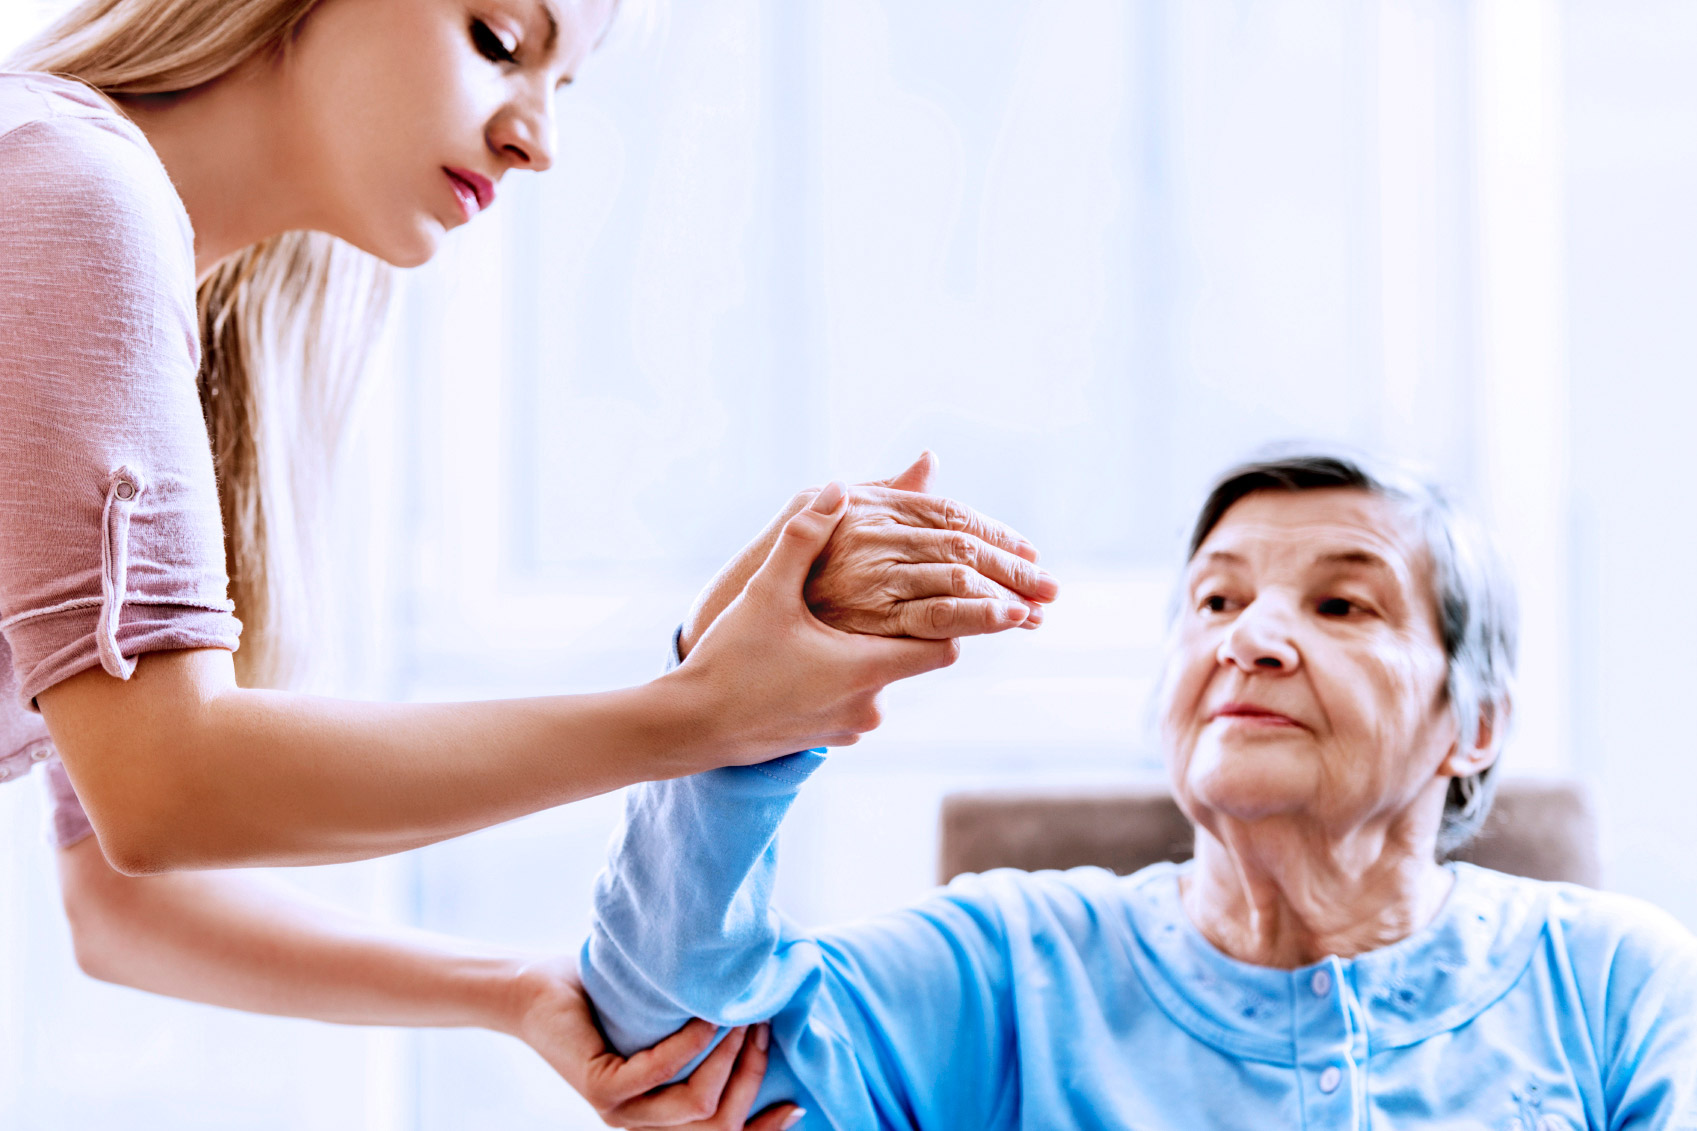 What are the benefits of having physiotherapy at home?